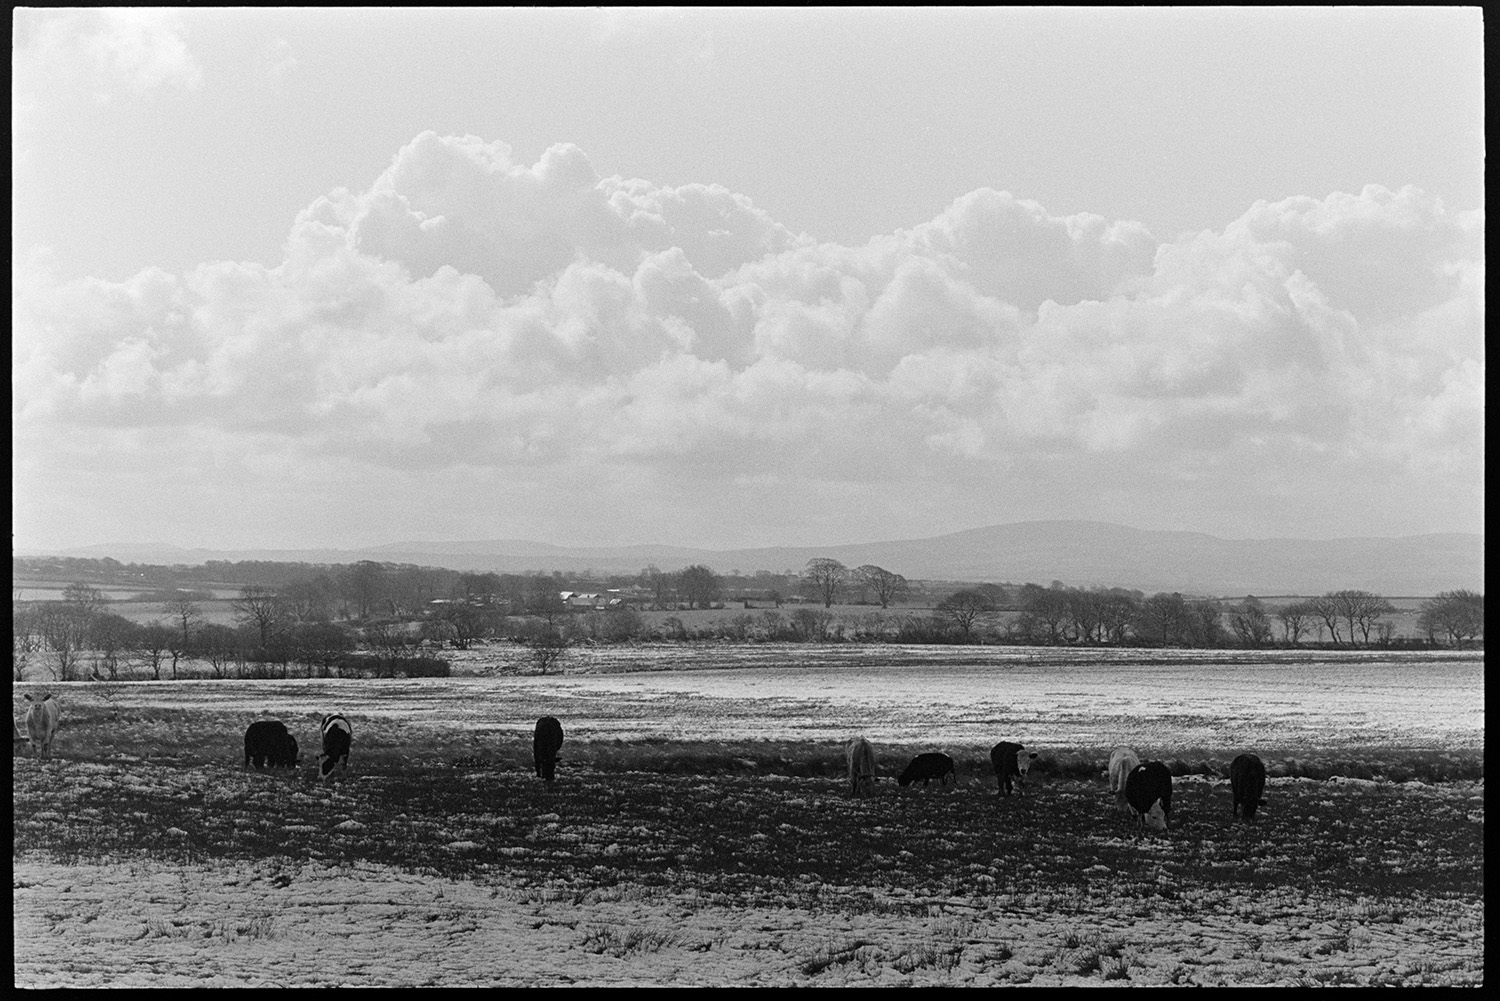 Snow, farmer feeding and counting sheep. <br /> [Cows grazing in a snow covered field at Parsonage Farm, Chulmleigh. A landscape of snow covered trees and fields can be seen in the background.]